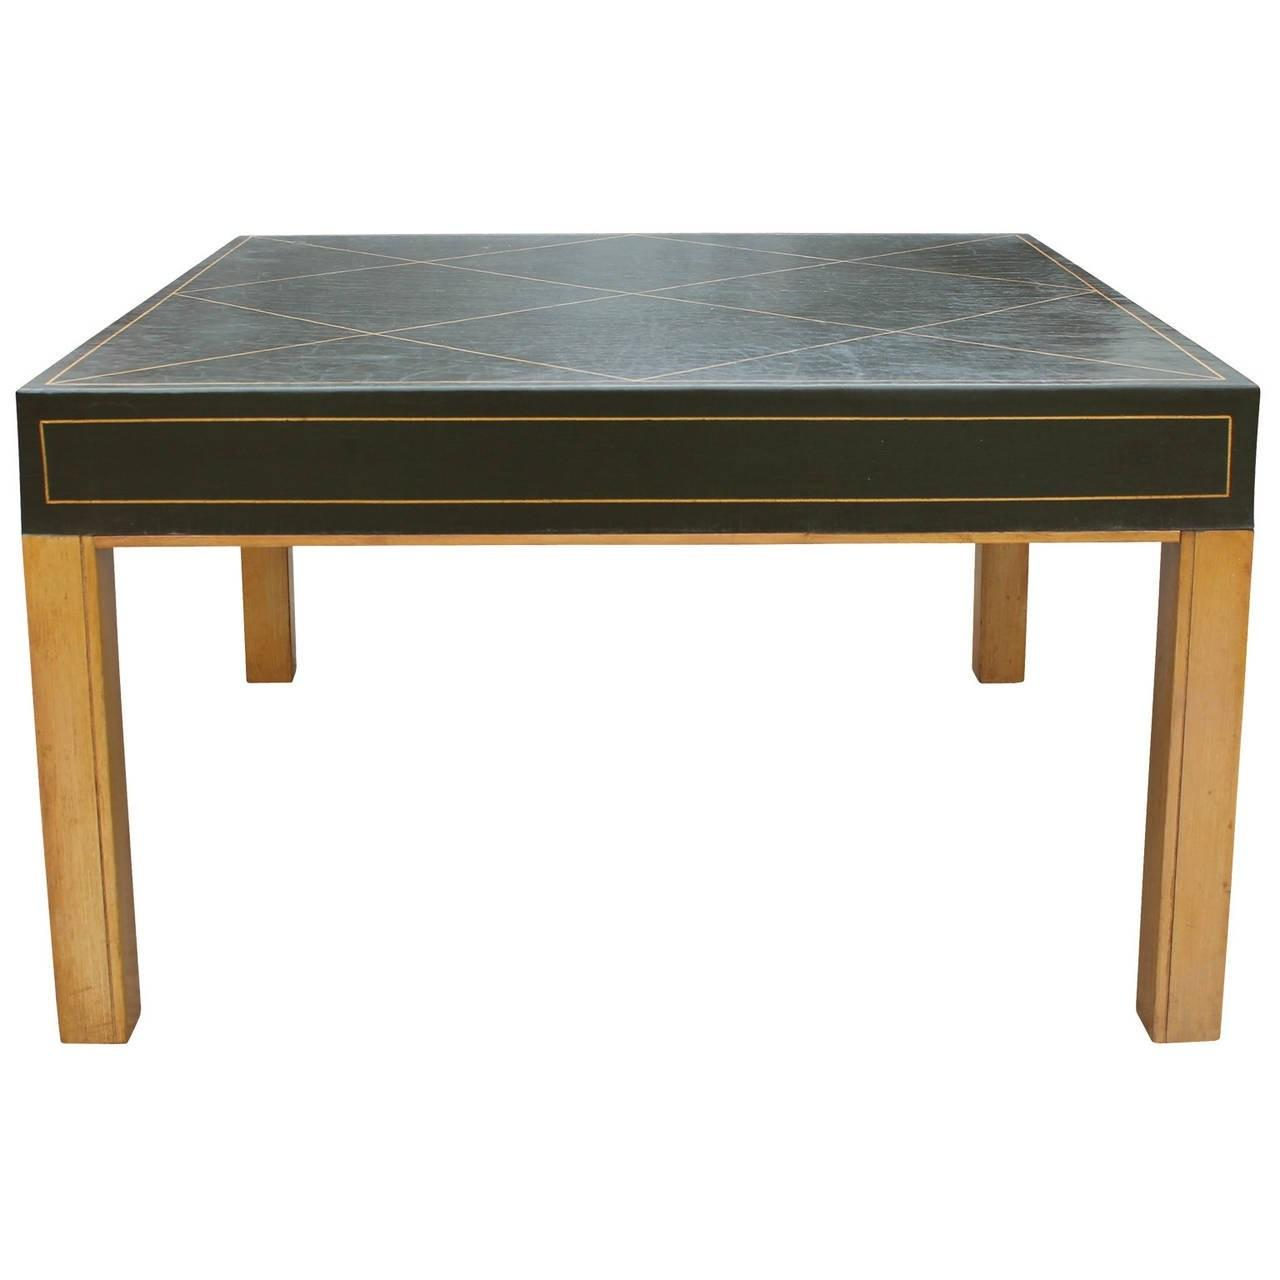 Green Leather Tommi Parzinger Style Coffee Table Sale